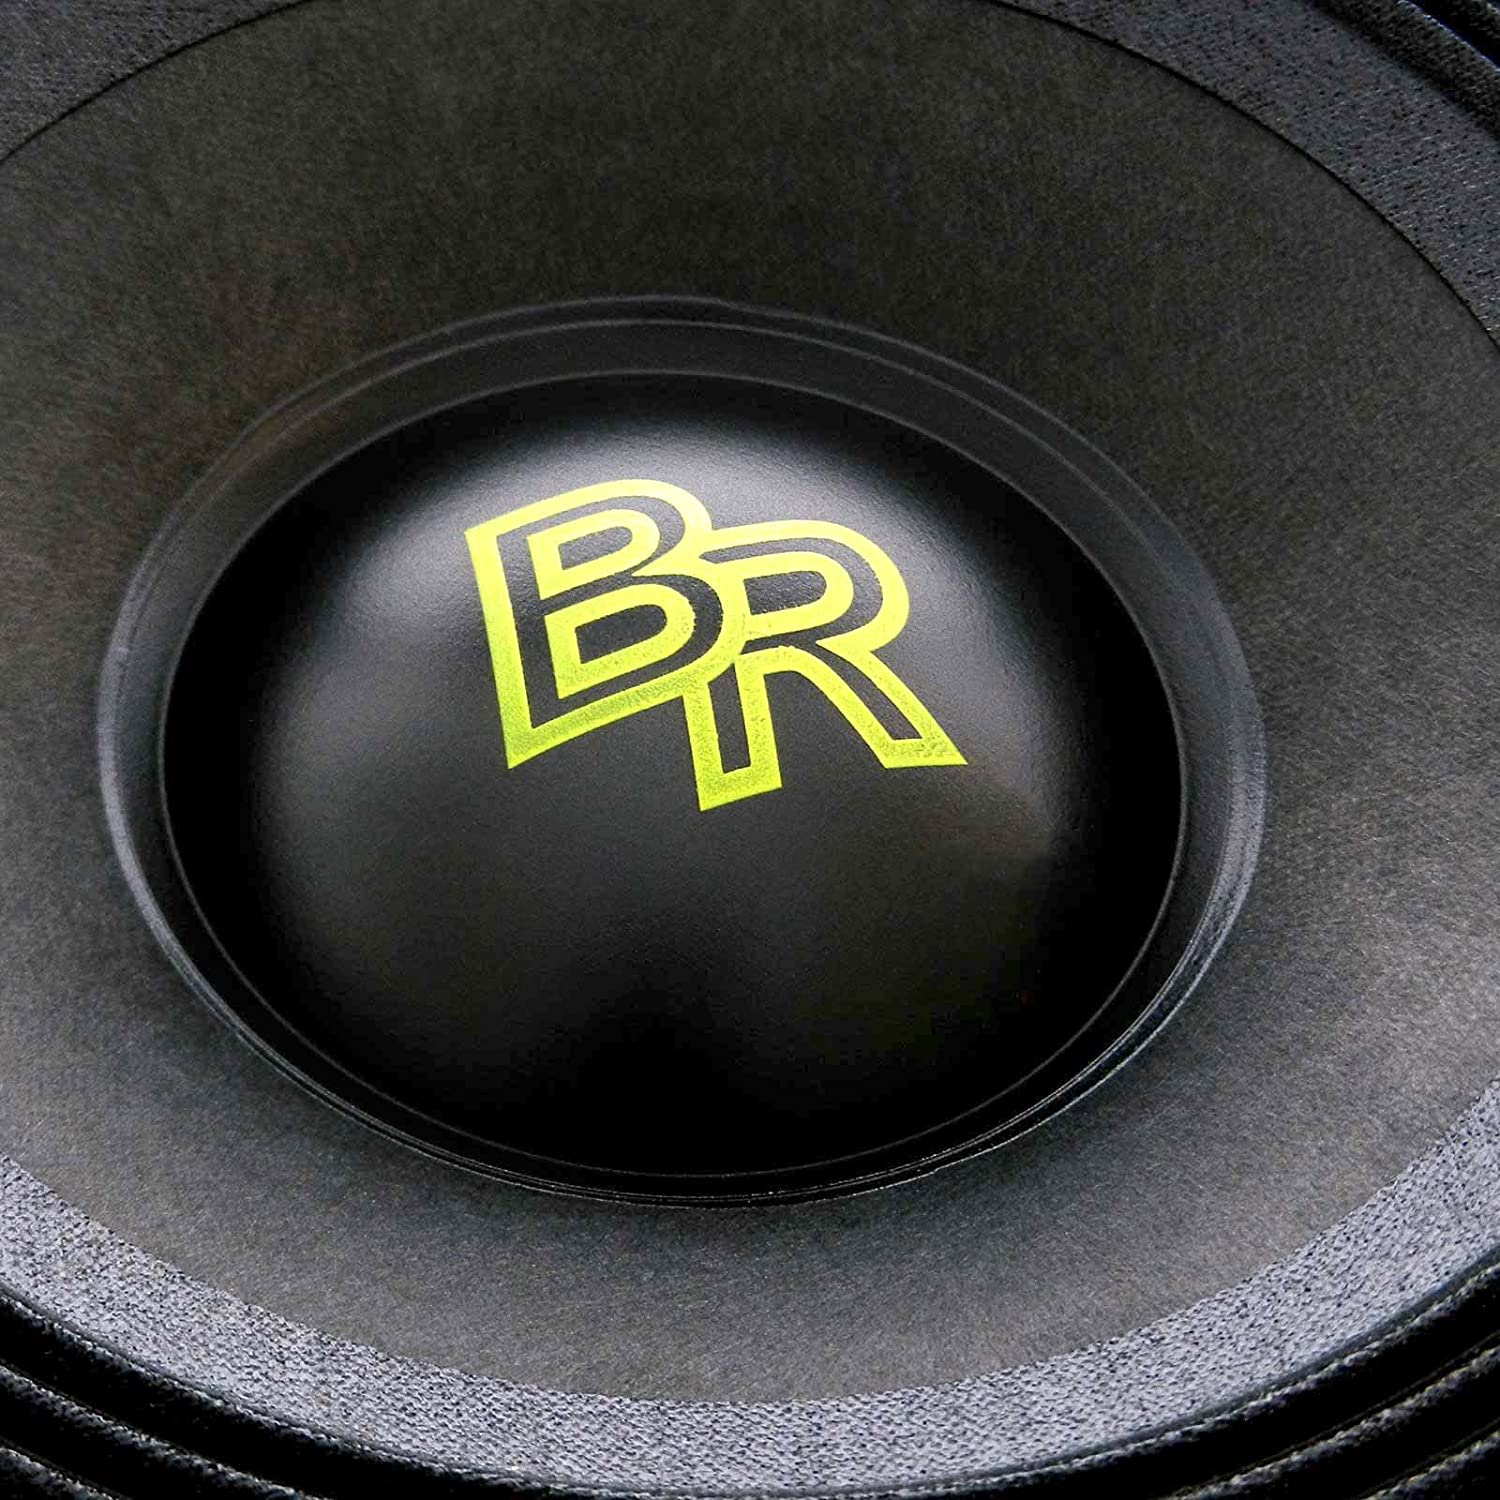 Bass Rockers Loaded 1200 Watts Speaker Pod Box Two 8 Dual 4 Ohm Subwoofer Wiring 3 Subs Also 2 Sub To A 300w Midrange Speakers And 15 Bullet Tweeters 1200w Total Power Handling Brch8 2brm8lp 2brcp 24 Car Electronics